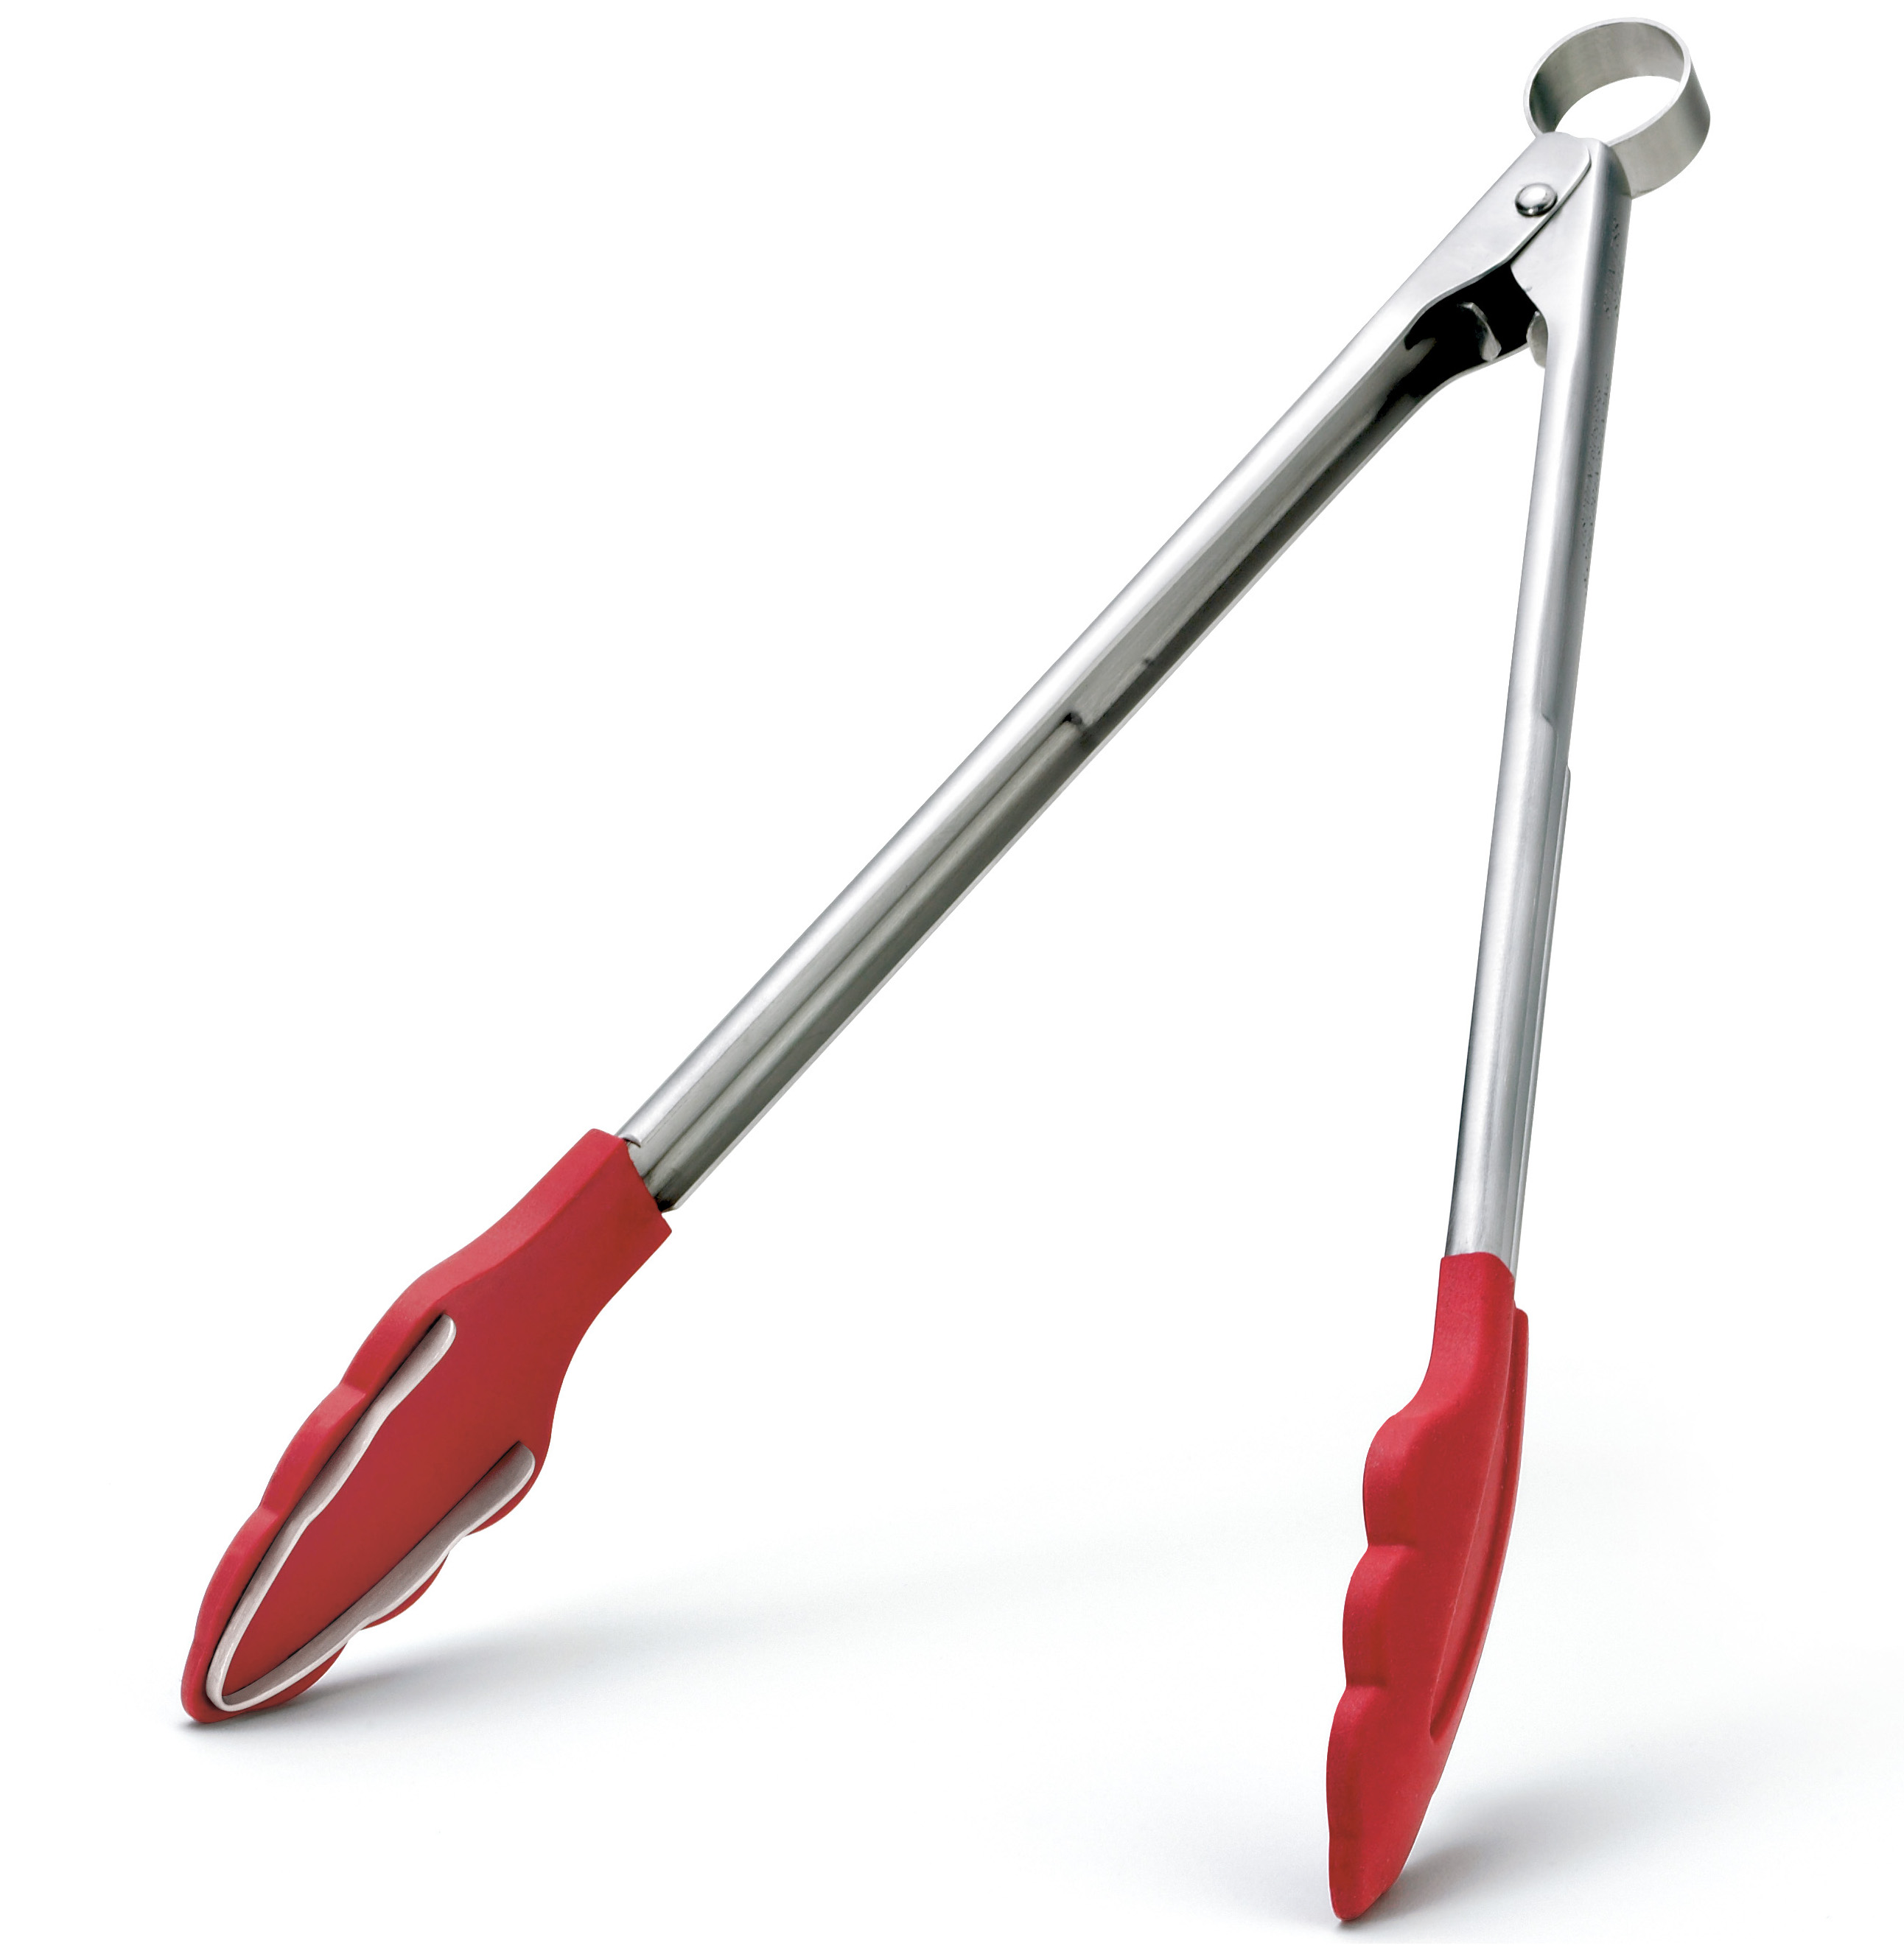 Cuisipro Red Silicone Tongs with Teeth